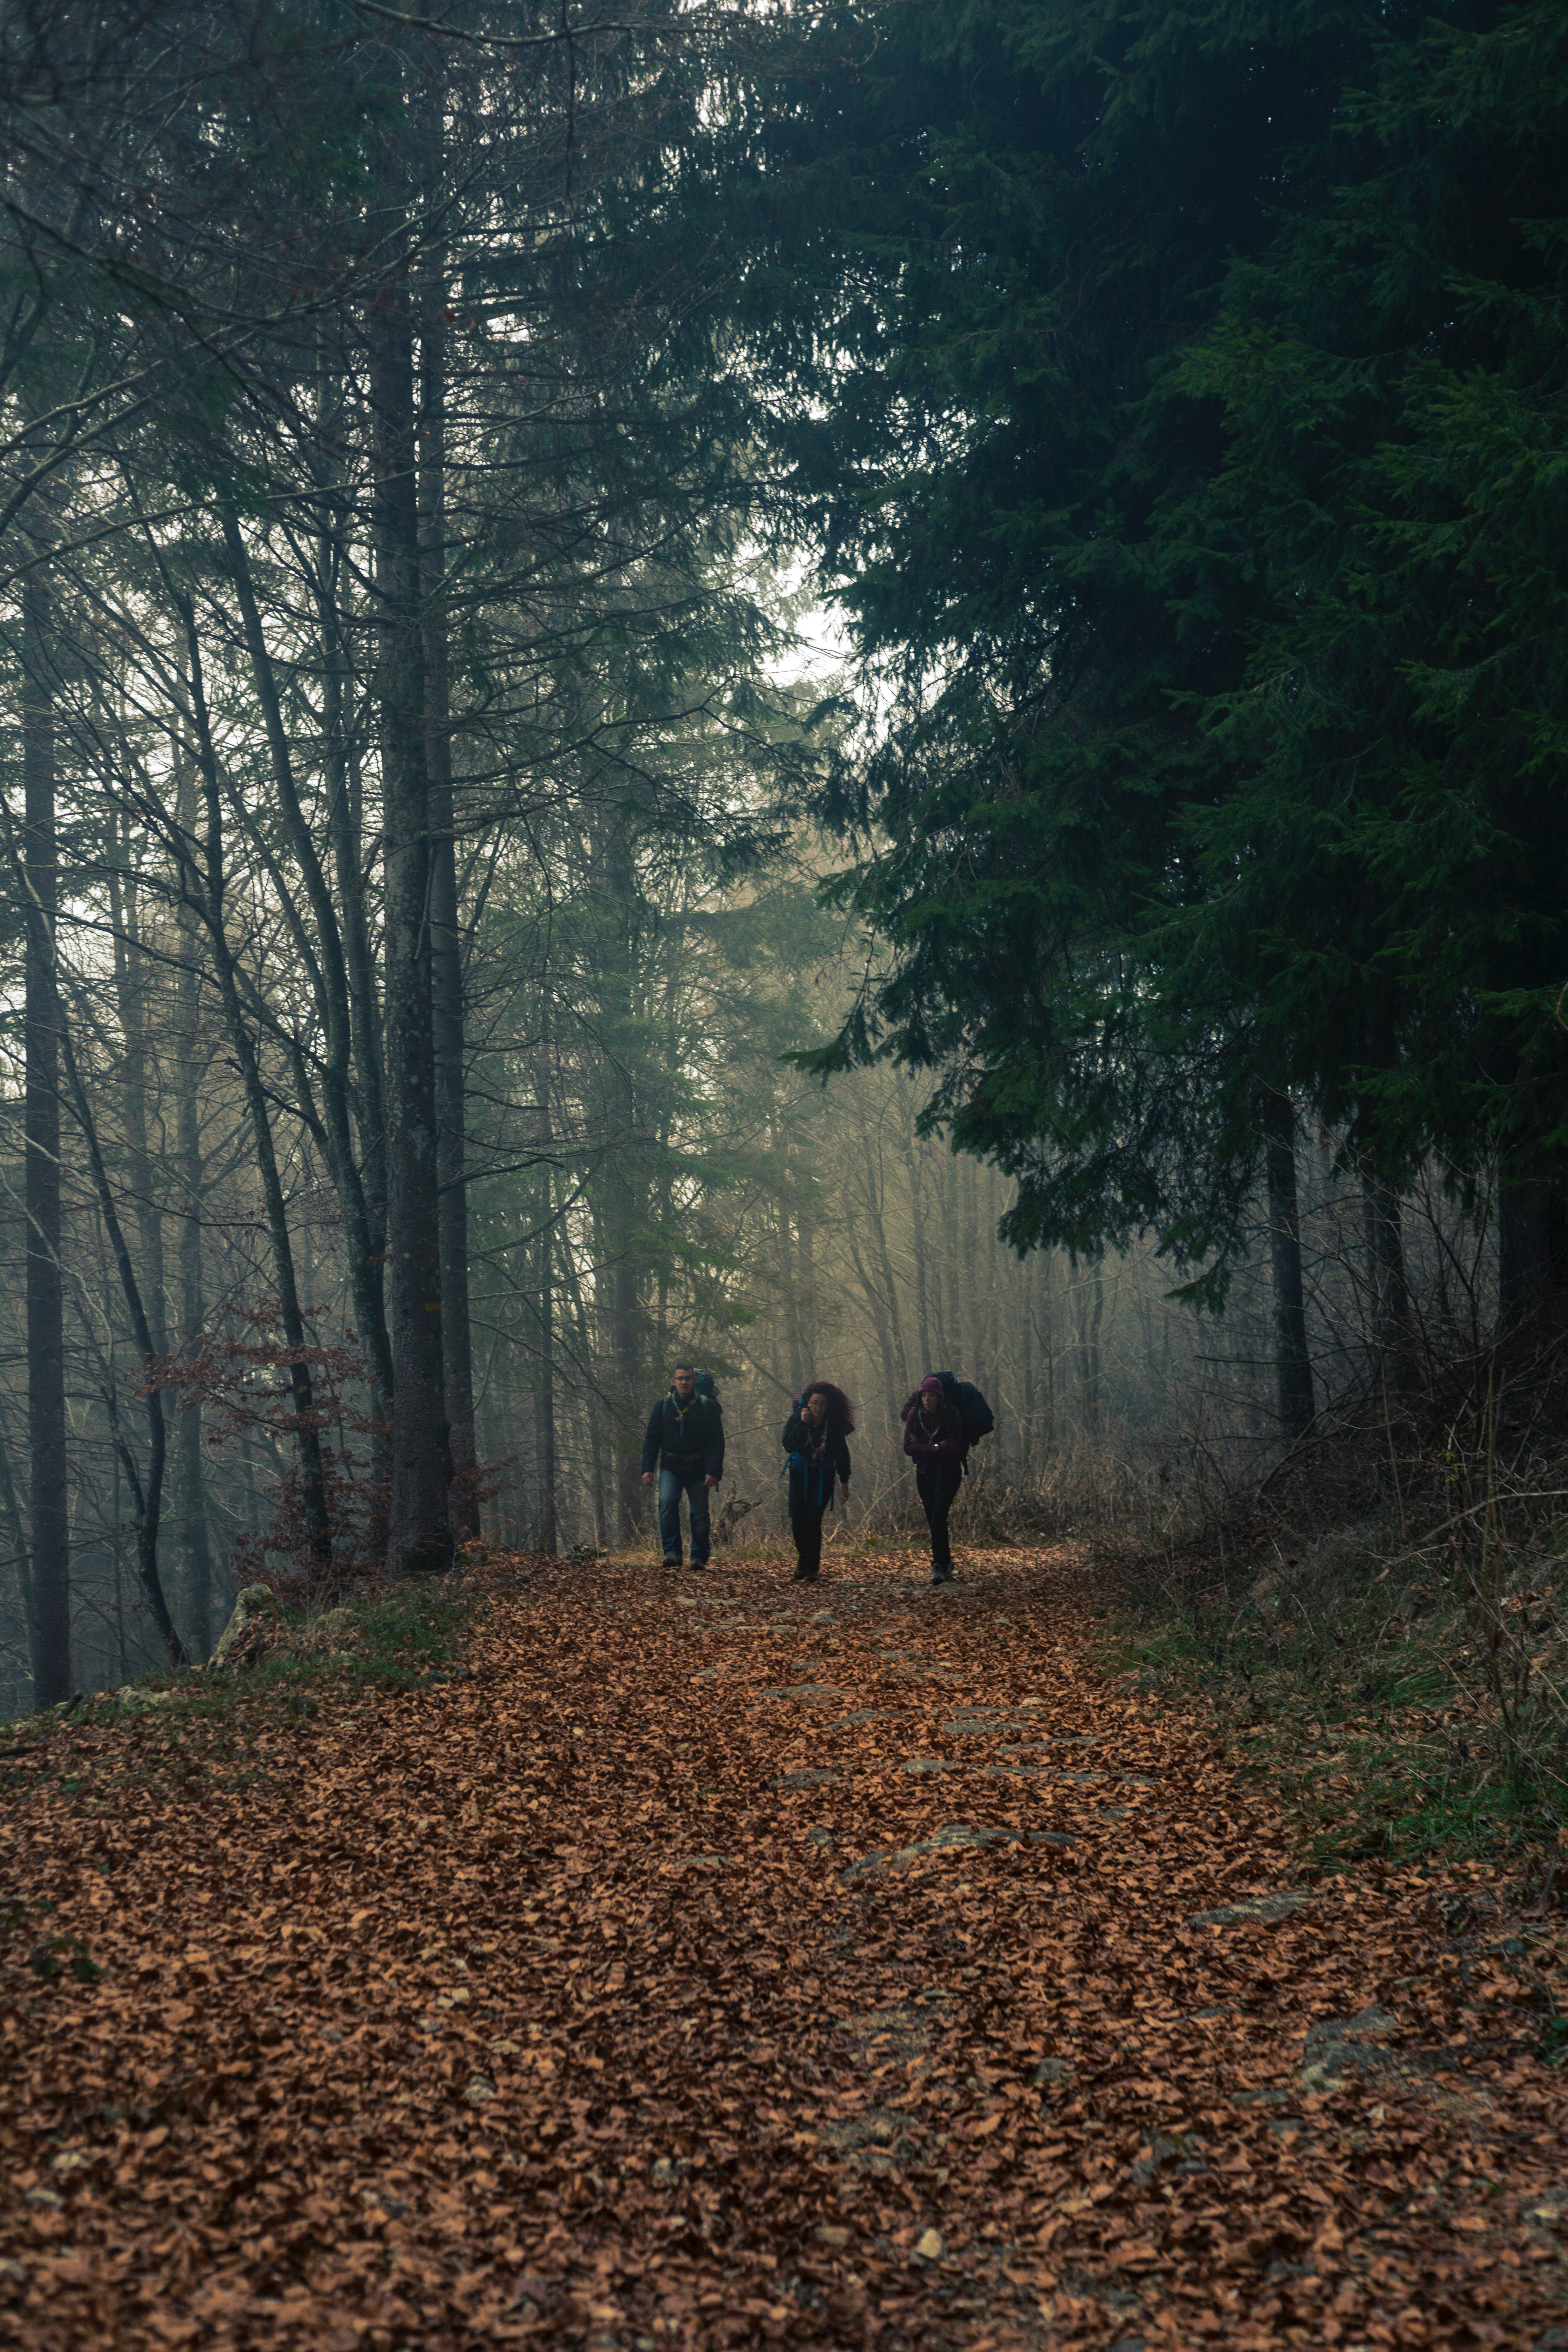 Three Person Walks on Dried Leaf Covered Pathway Surrounded by Trees, Adventure, Outdoors, Walking, Trekking, HQ Photo